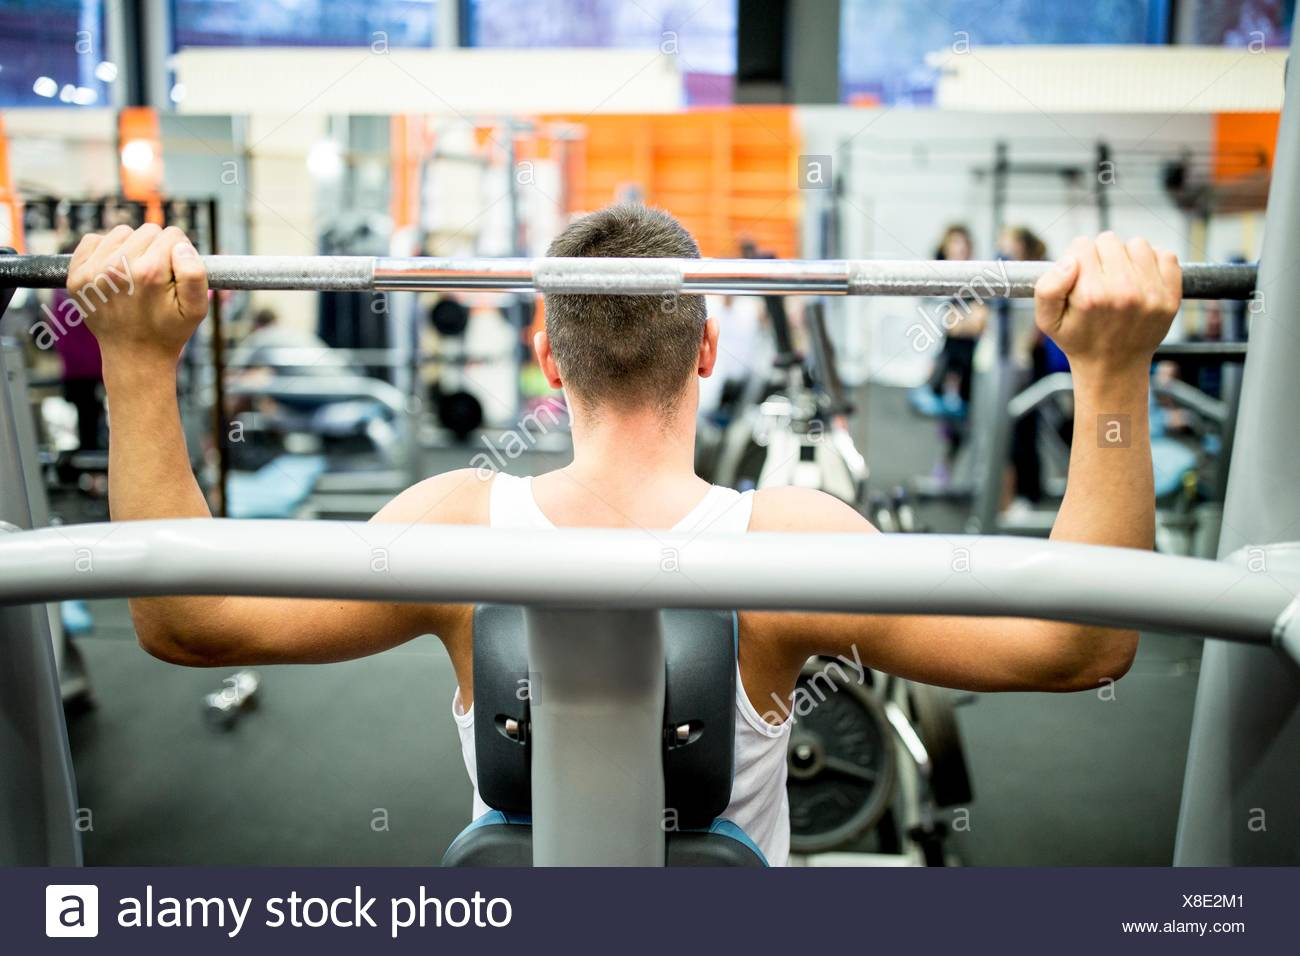 PROPERTY RELEASED. MODEL RELEASED. Young man using exercising machine in gym. - Stock Image